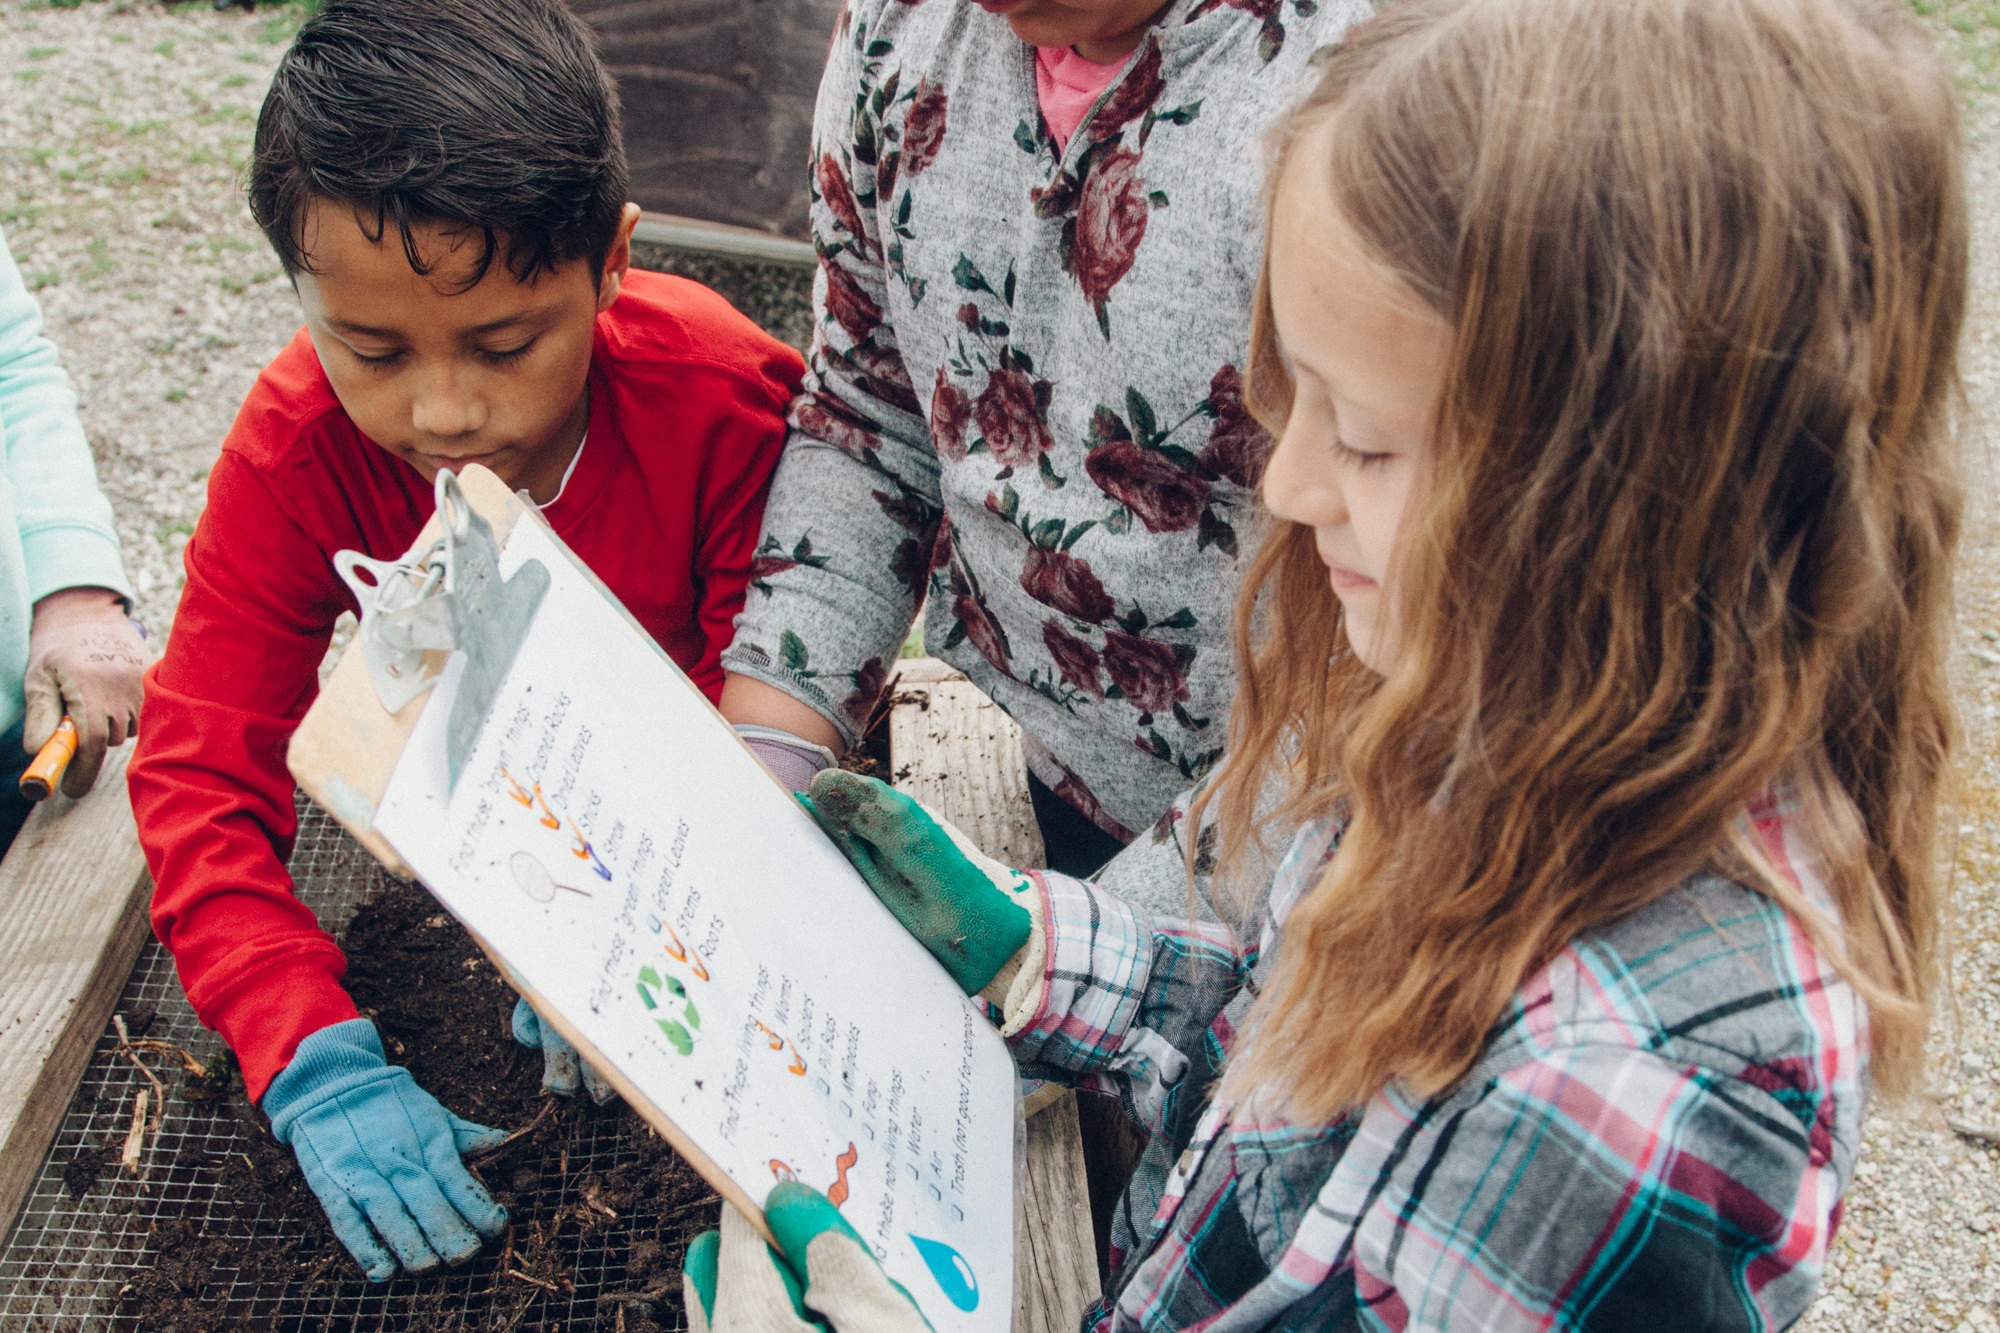 Field Trips at the San Mateo County School Farm are designed to reinforce inquiry based science learning. We use the farm as an outdoor classroom to explore, make observations, ask questions, and wonder about the natural world around us. -